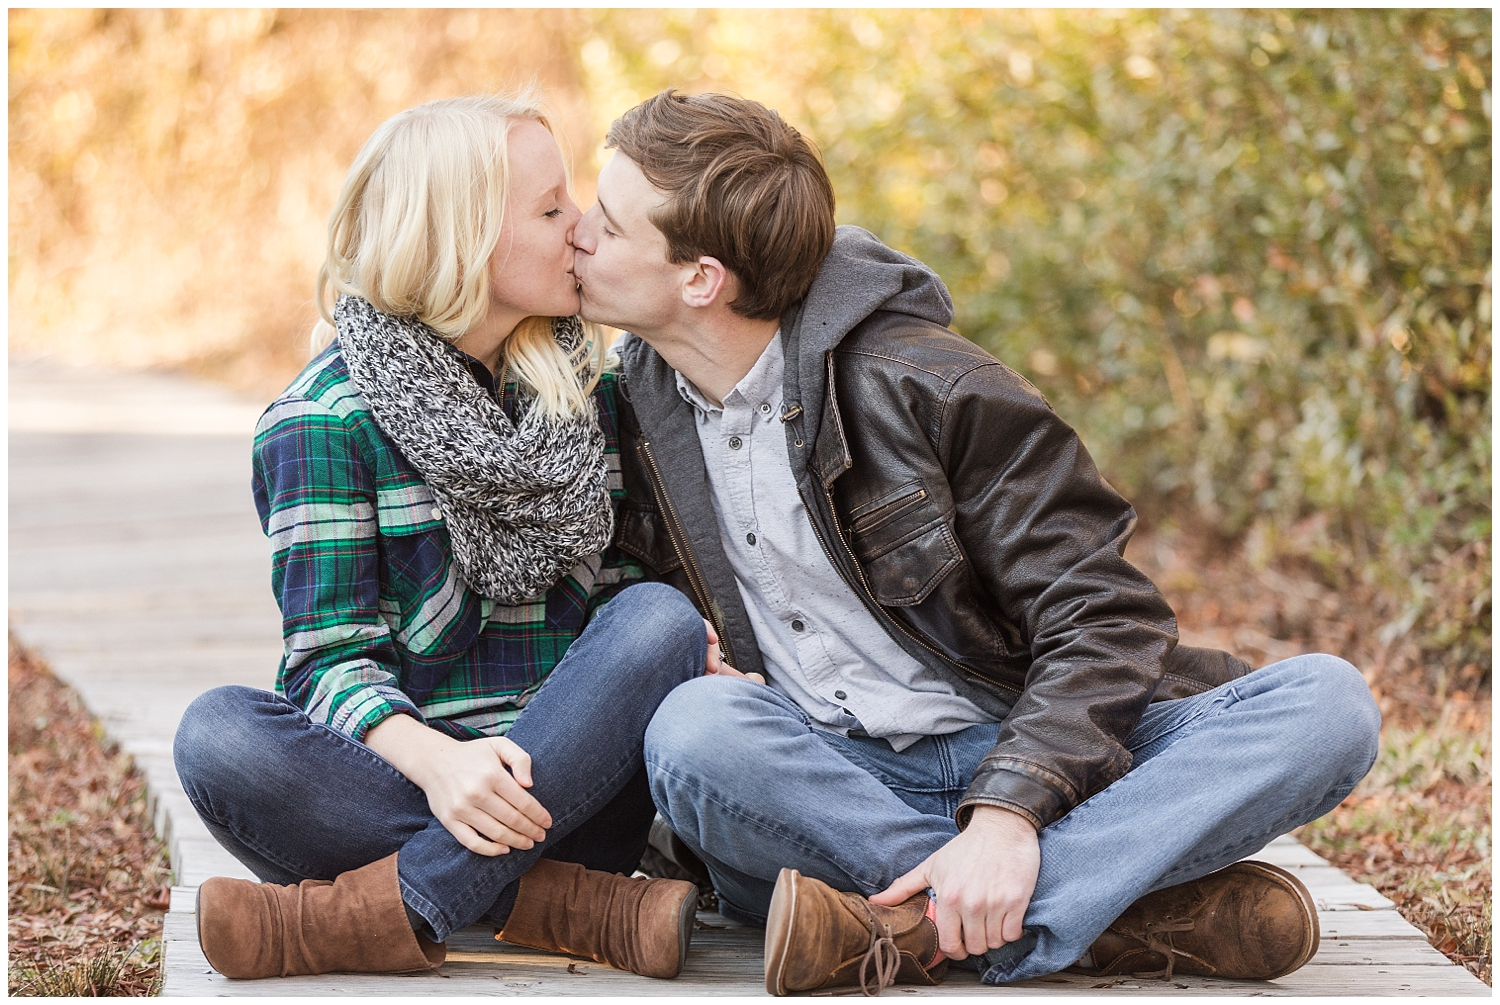 back bay virginia beach engagement session by elovephotos_1089.jpg